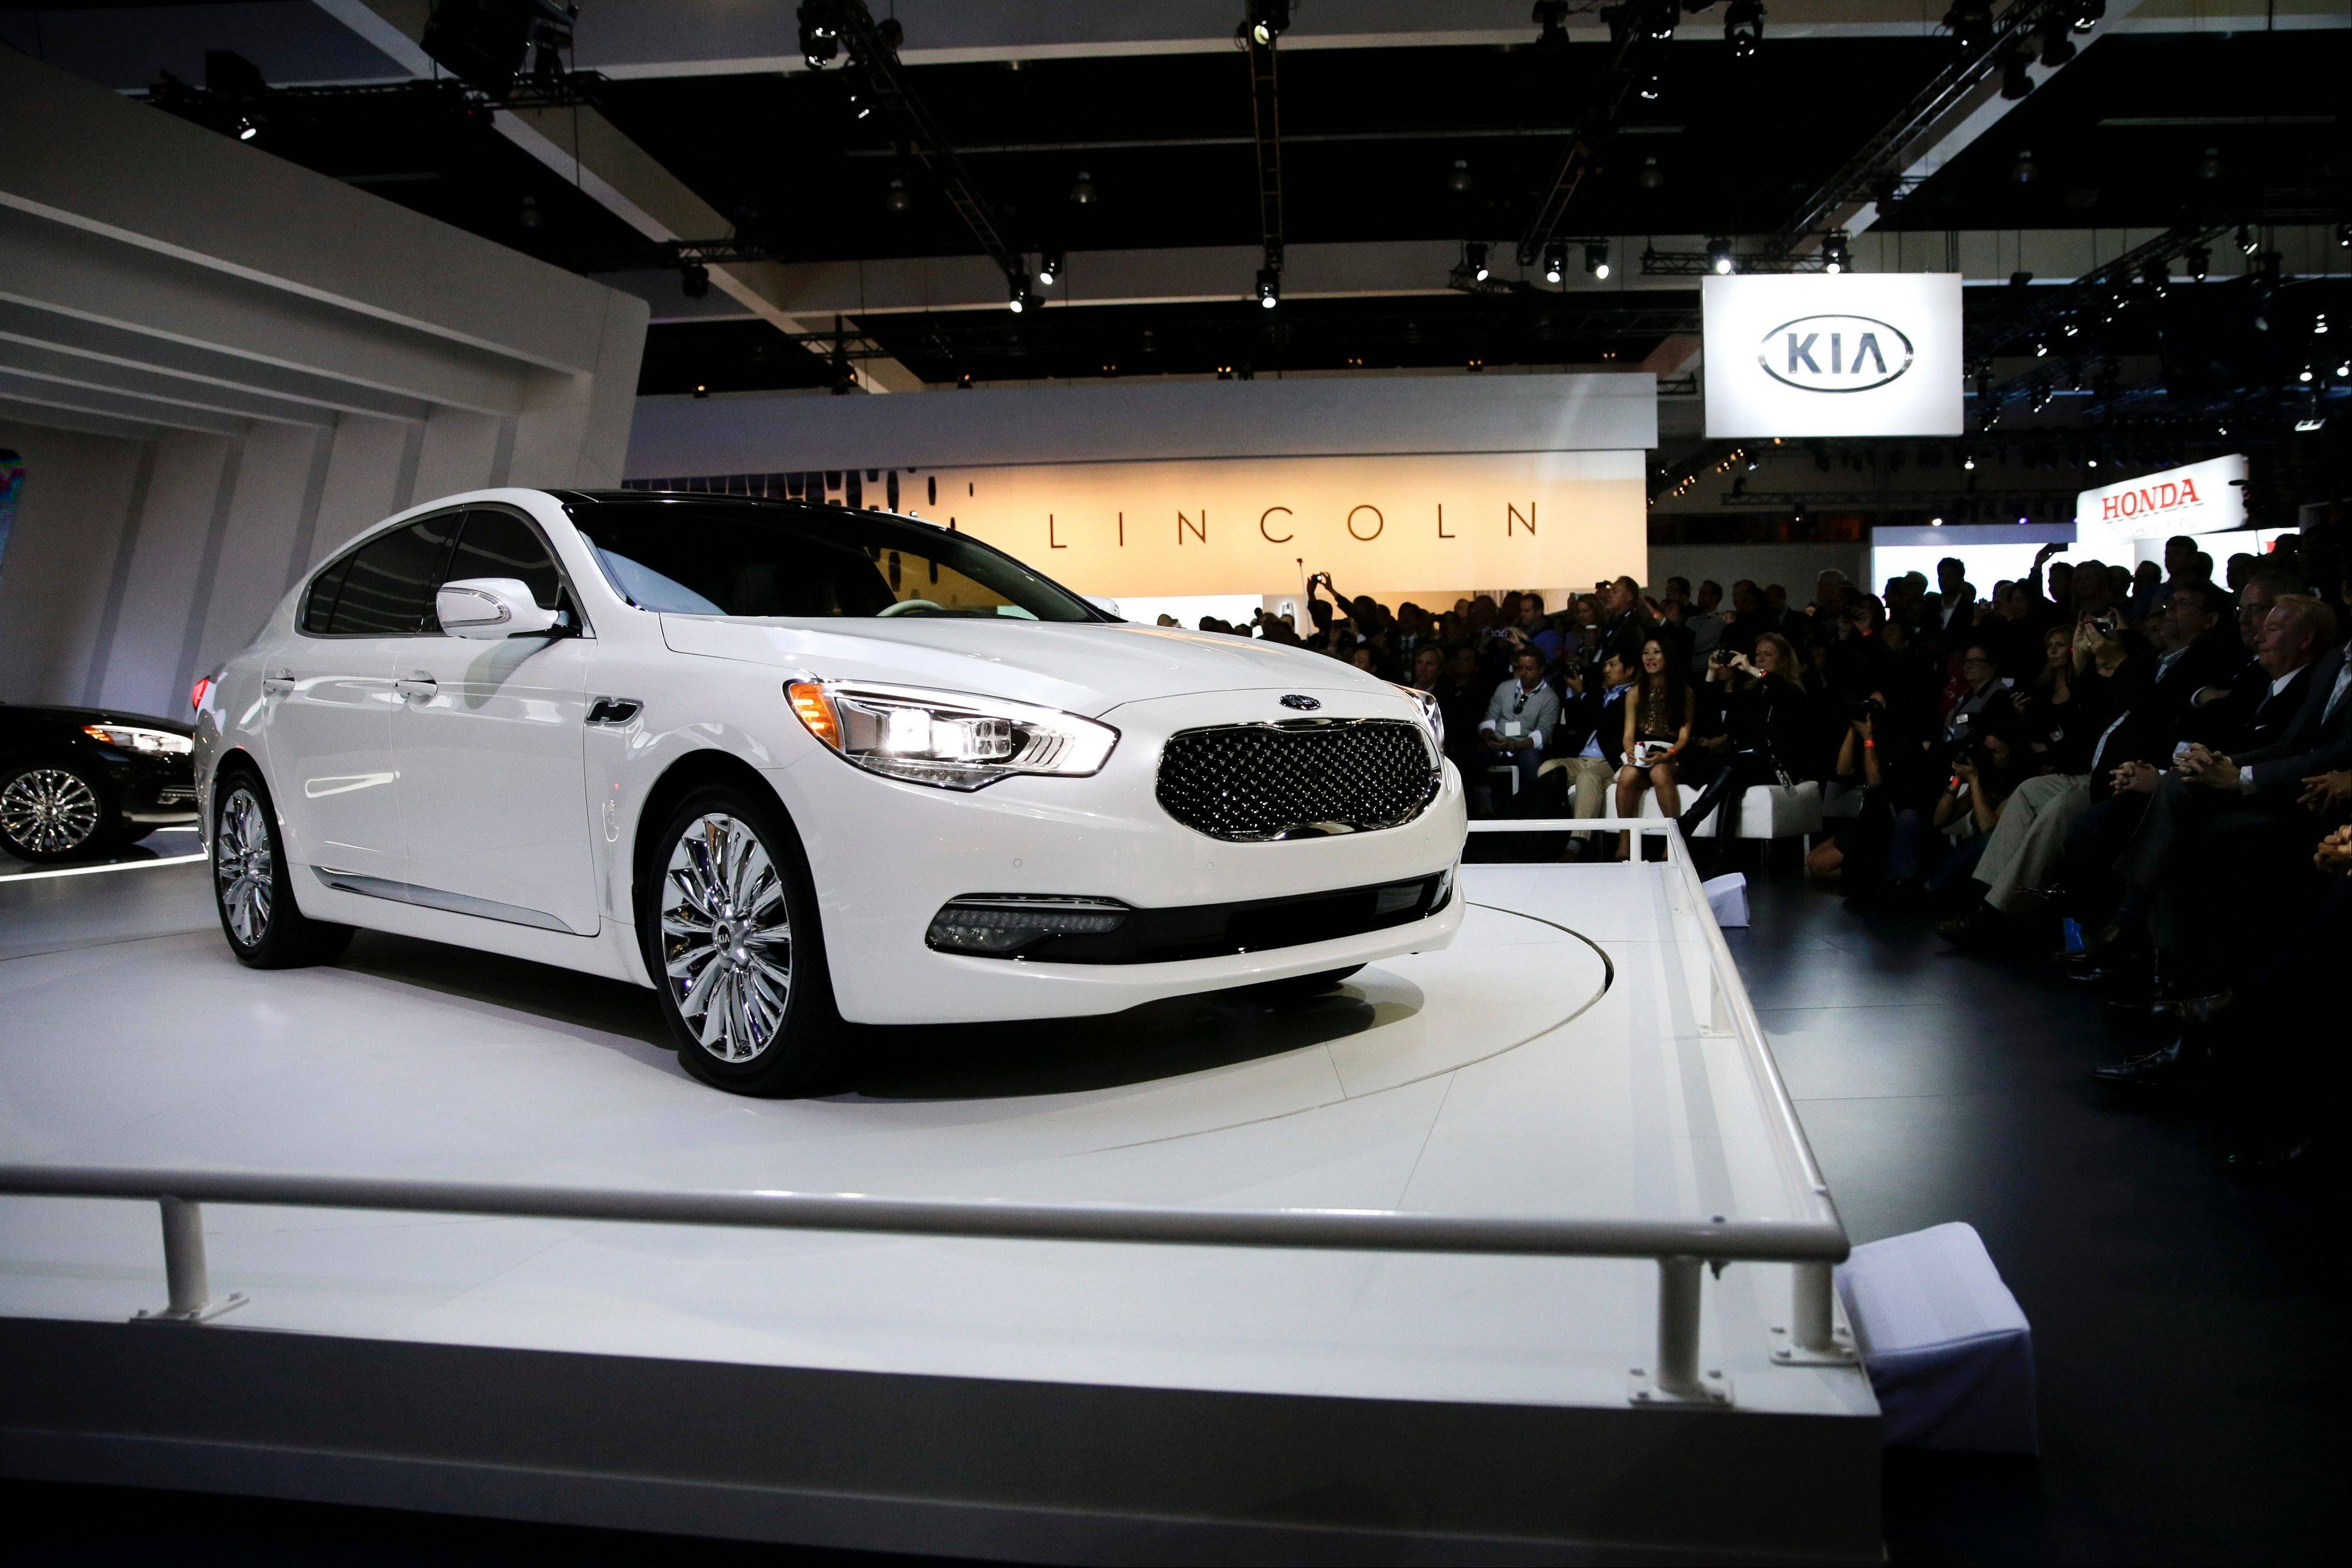 The new 2015 Kia K900 is introduced at the Los Angeles Auto Show on Wednesday in Los Angeles. Kia Motors Corp. is recalling nearly 80,000 minivans in the U.S. because a suspension part can break and cause drivers to lose control of the vehicles.